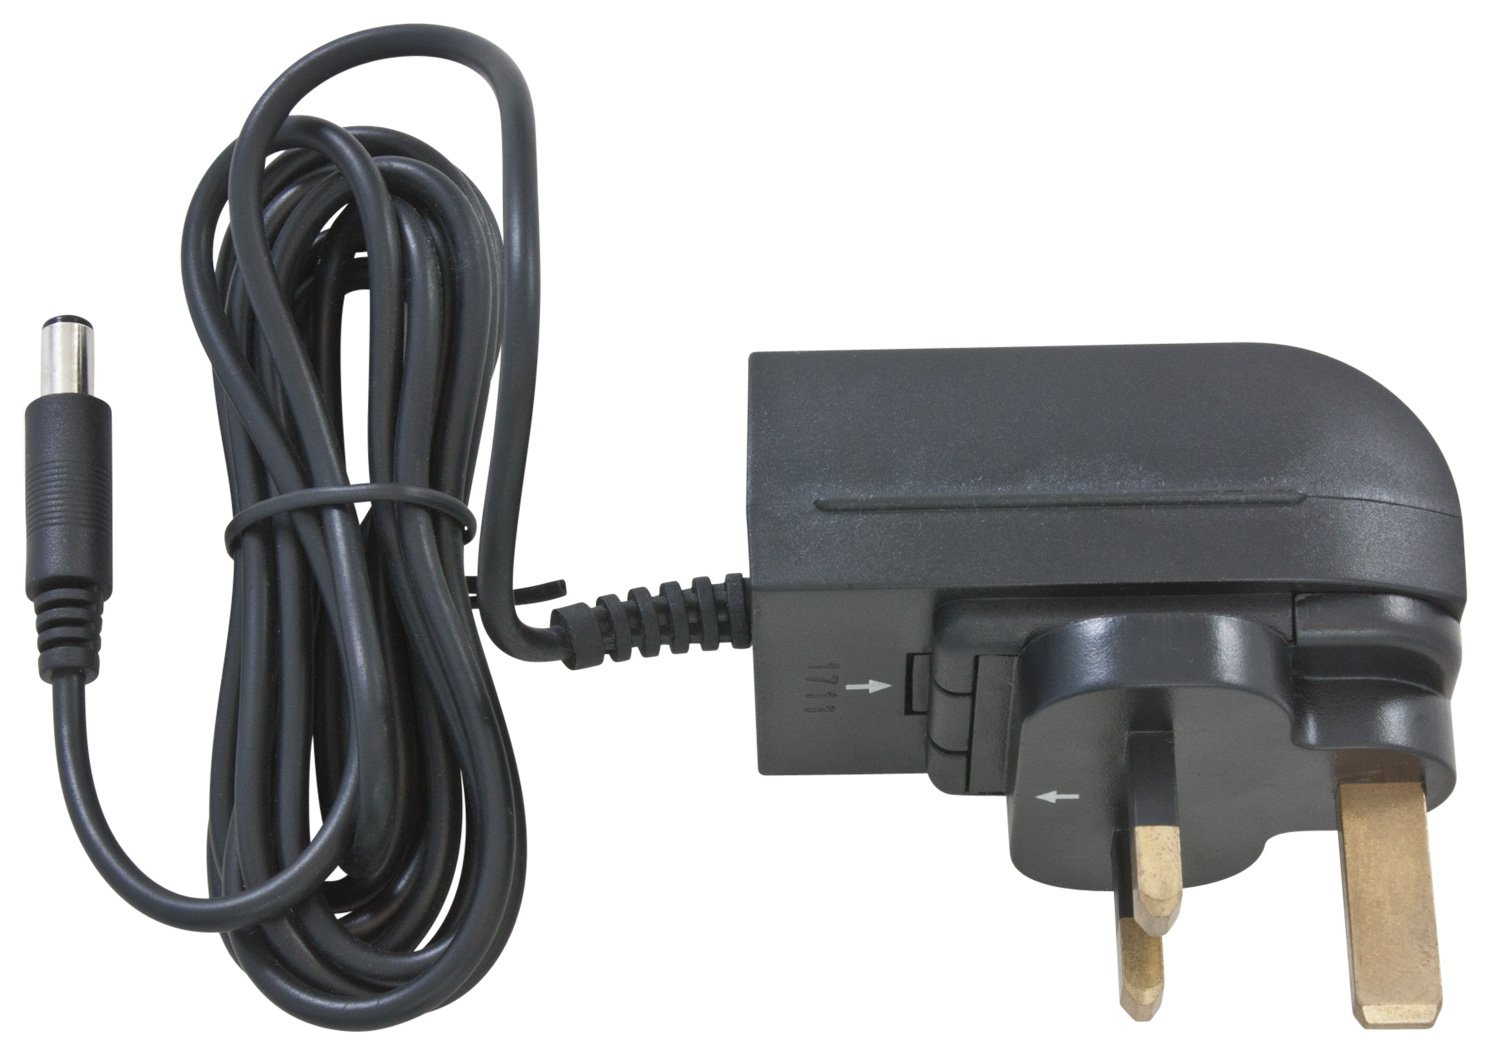 Epa3 115v Power Adaptor For Yamaha Keyboards Equivalent To Wiring Ac Plug In Pa 130a Musical Instruments